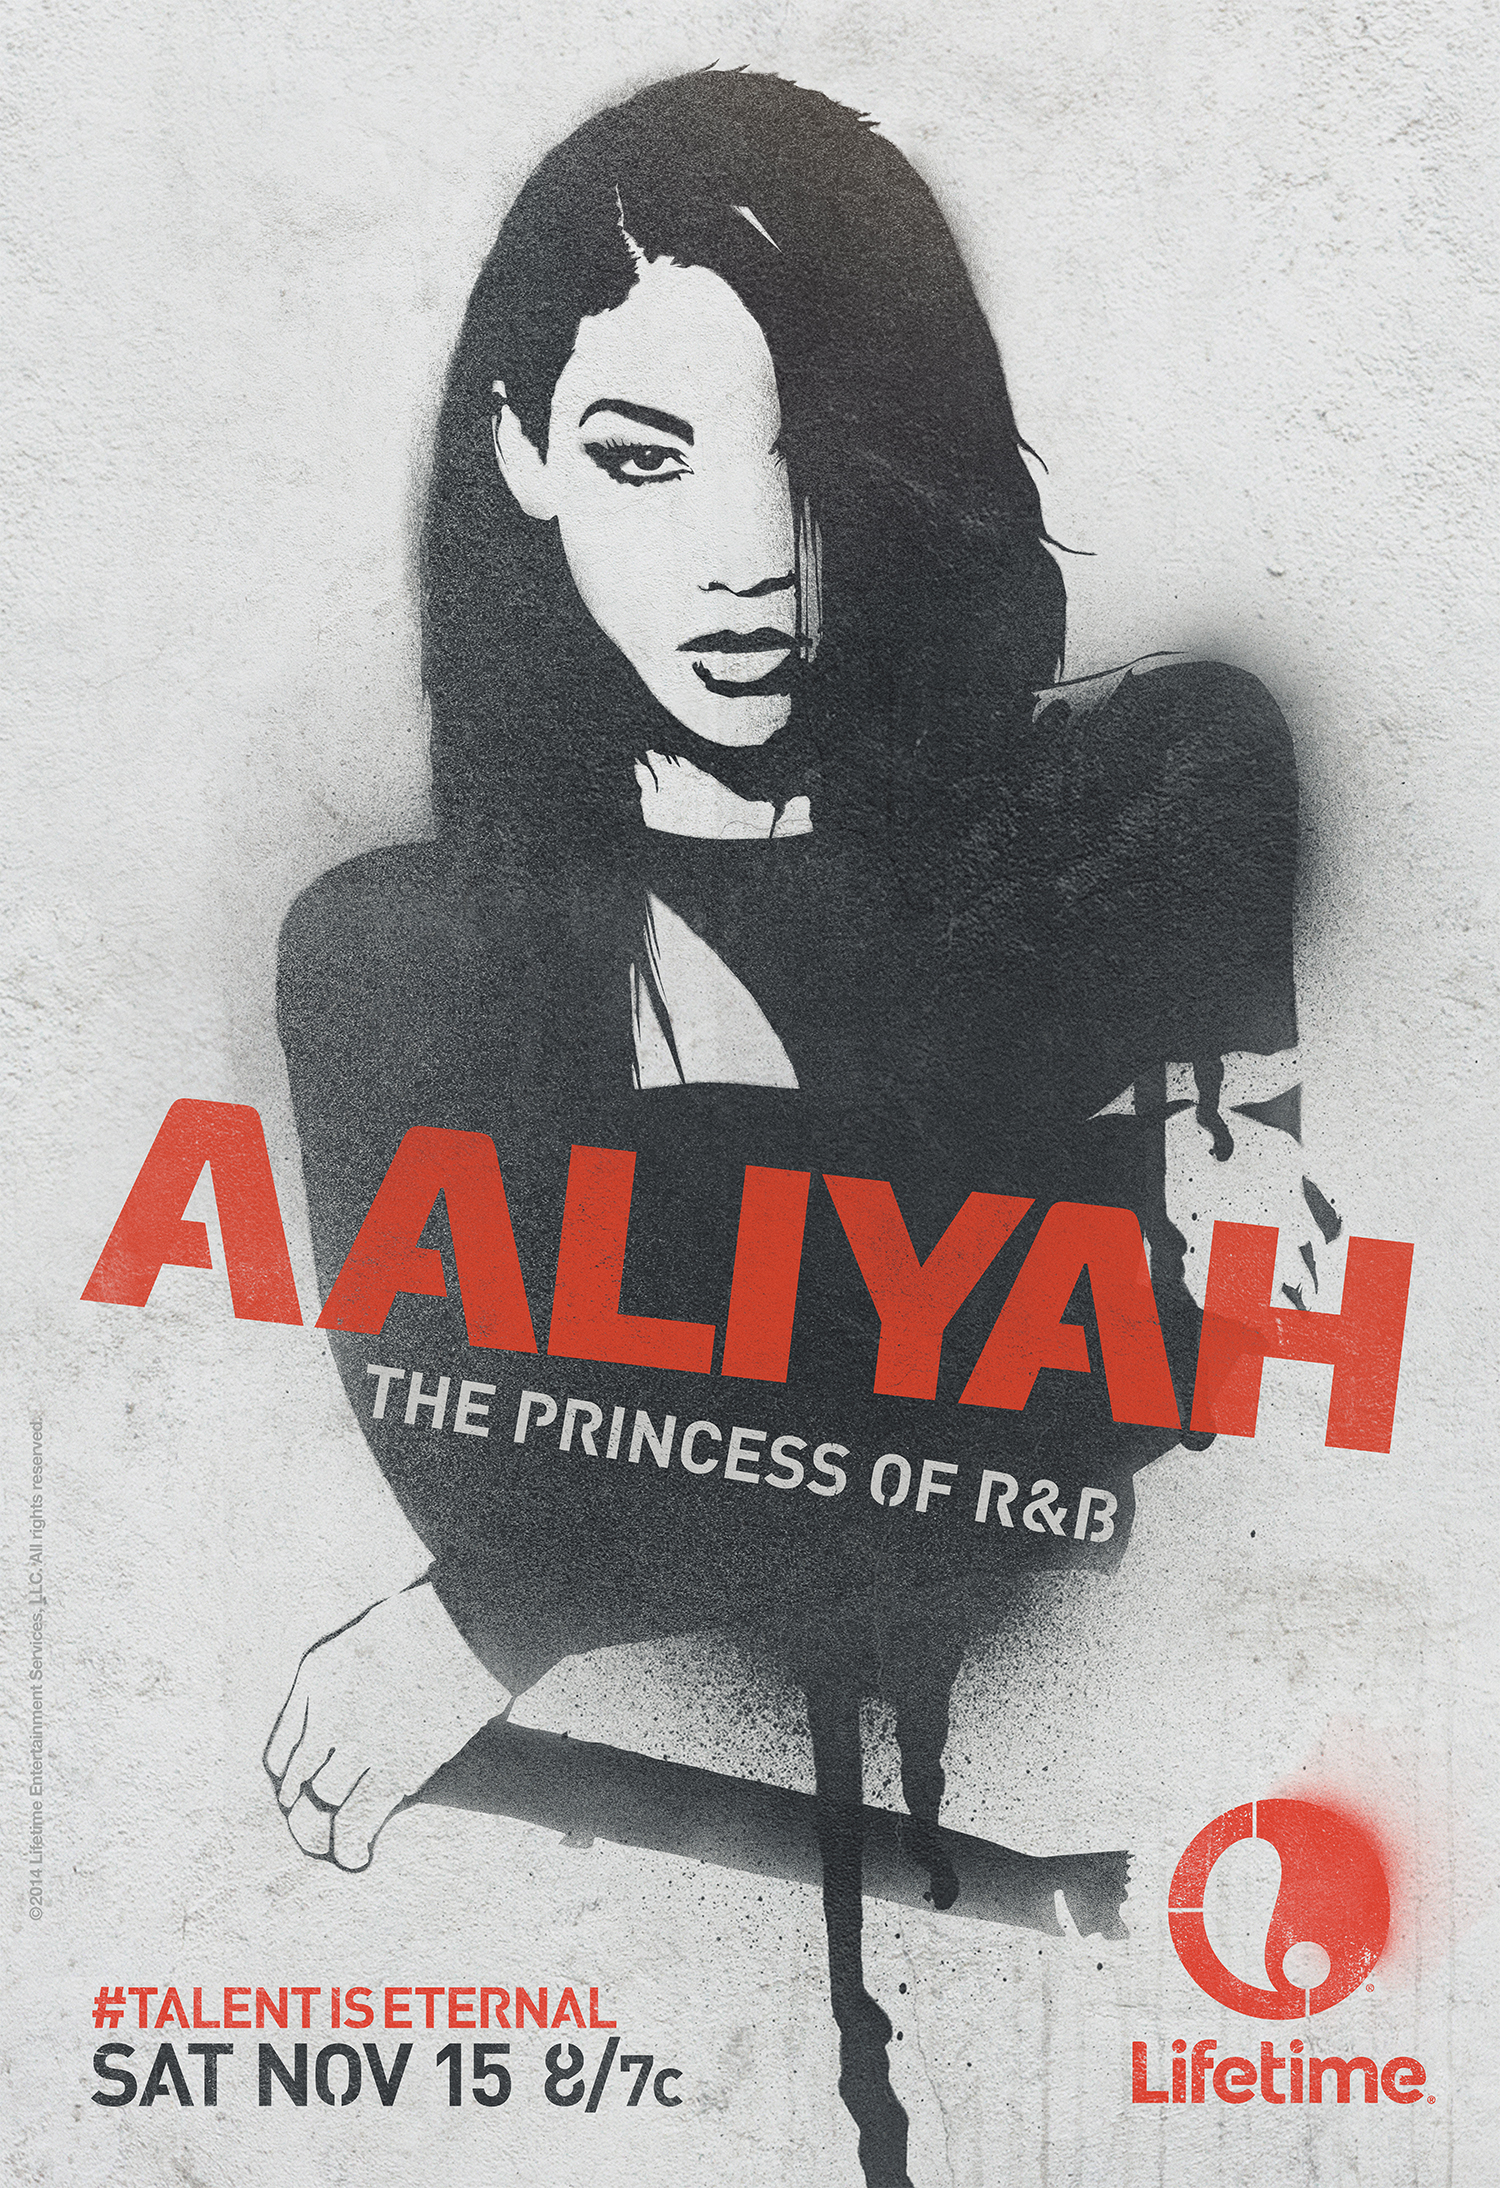 AALIYAH_finish